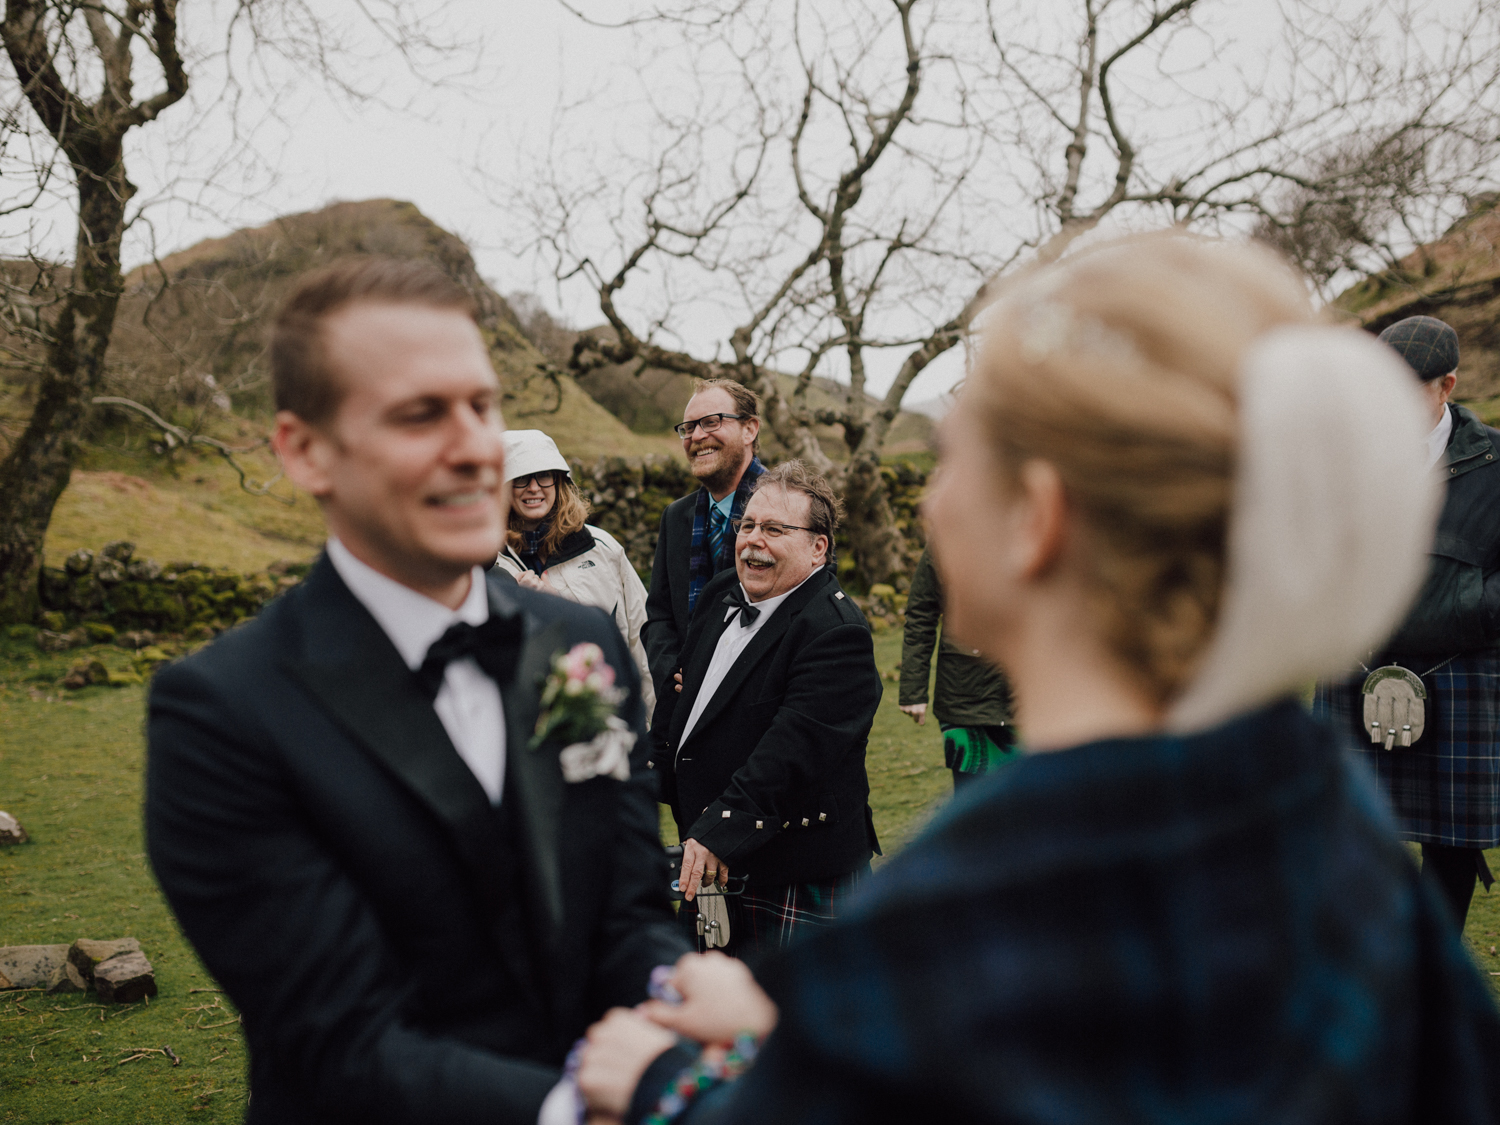 capyture-wedding-photographer-destination-elopement-isle-skye-scotland-254